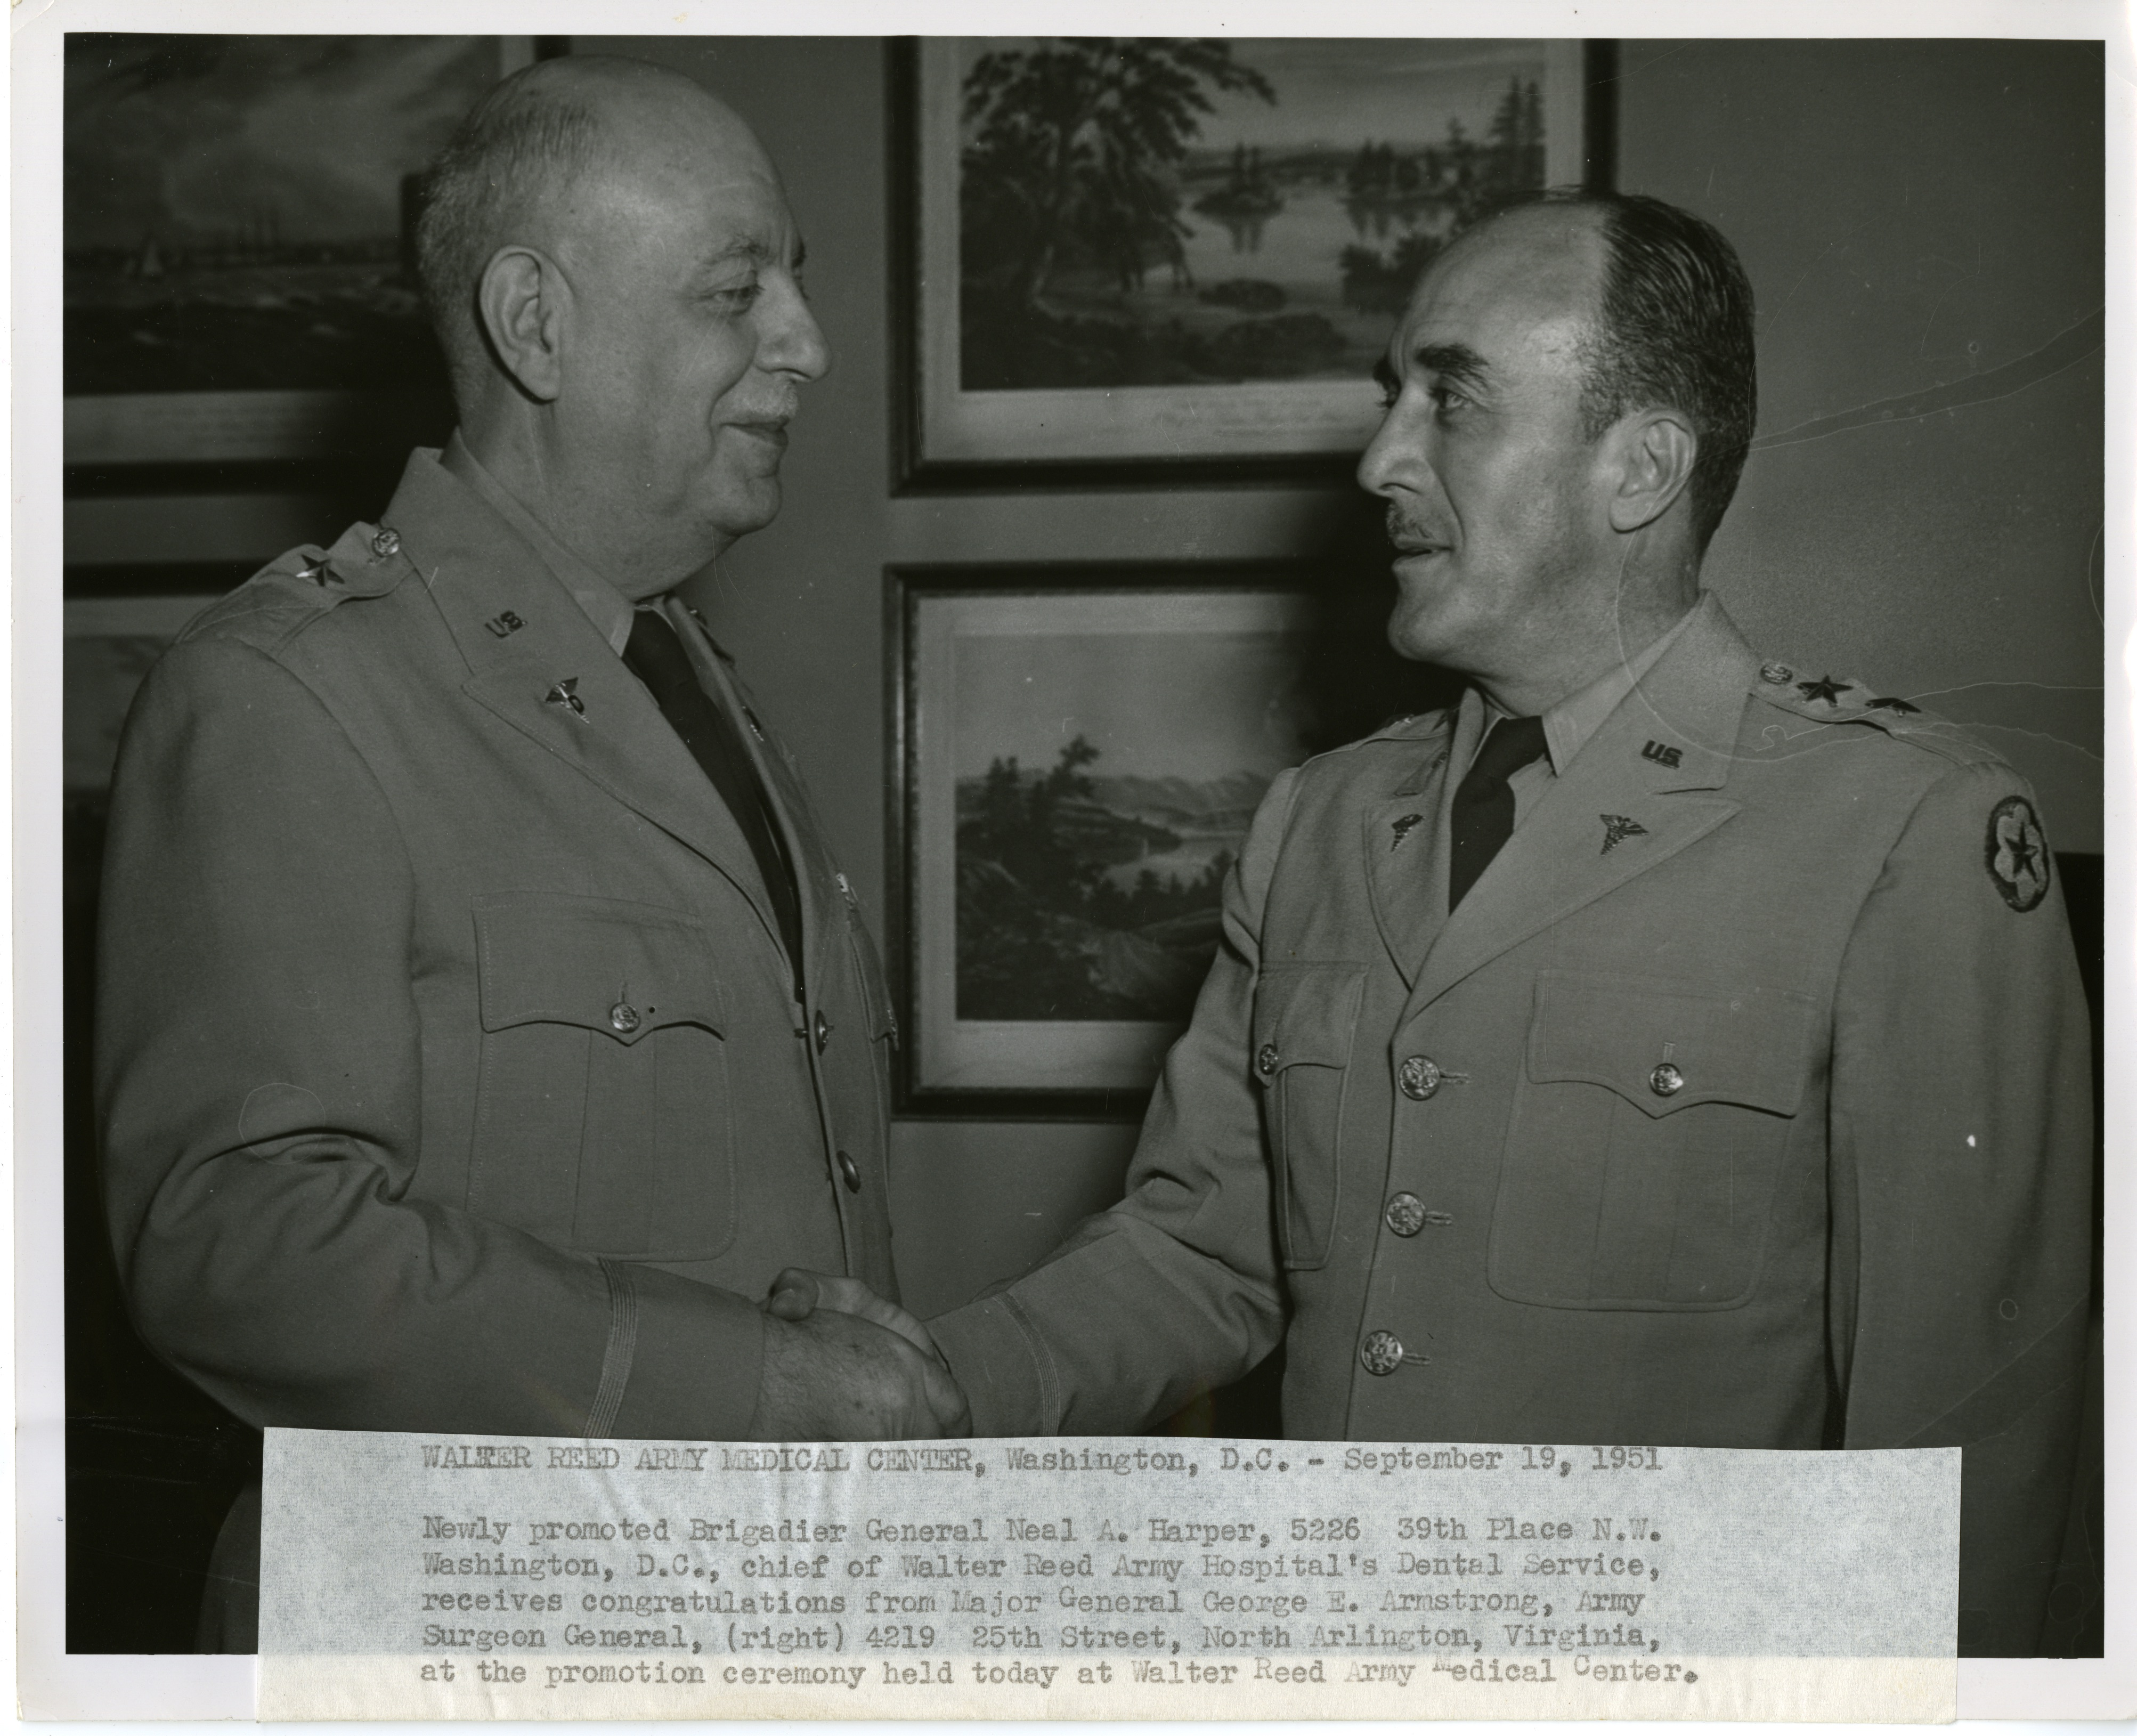 Two people in military uniforms shake hands.